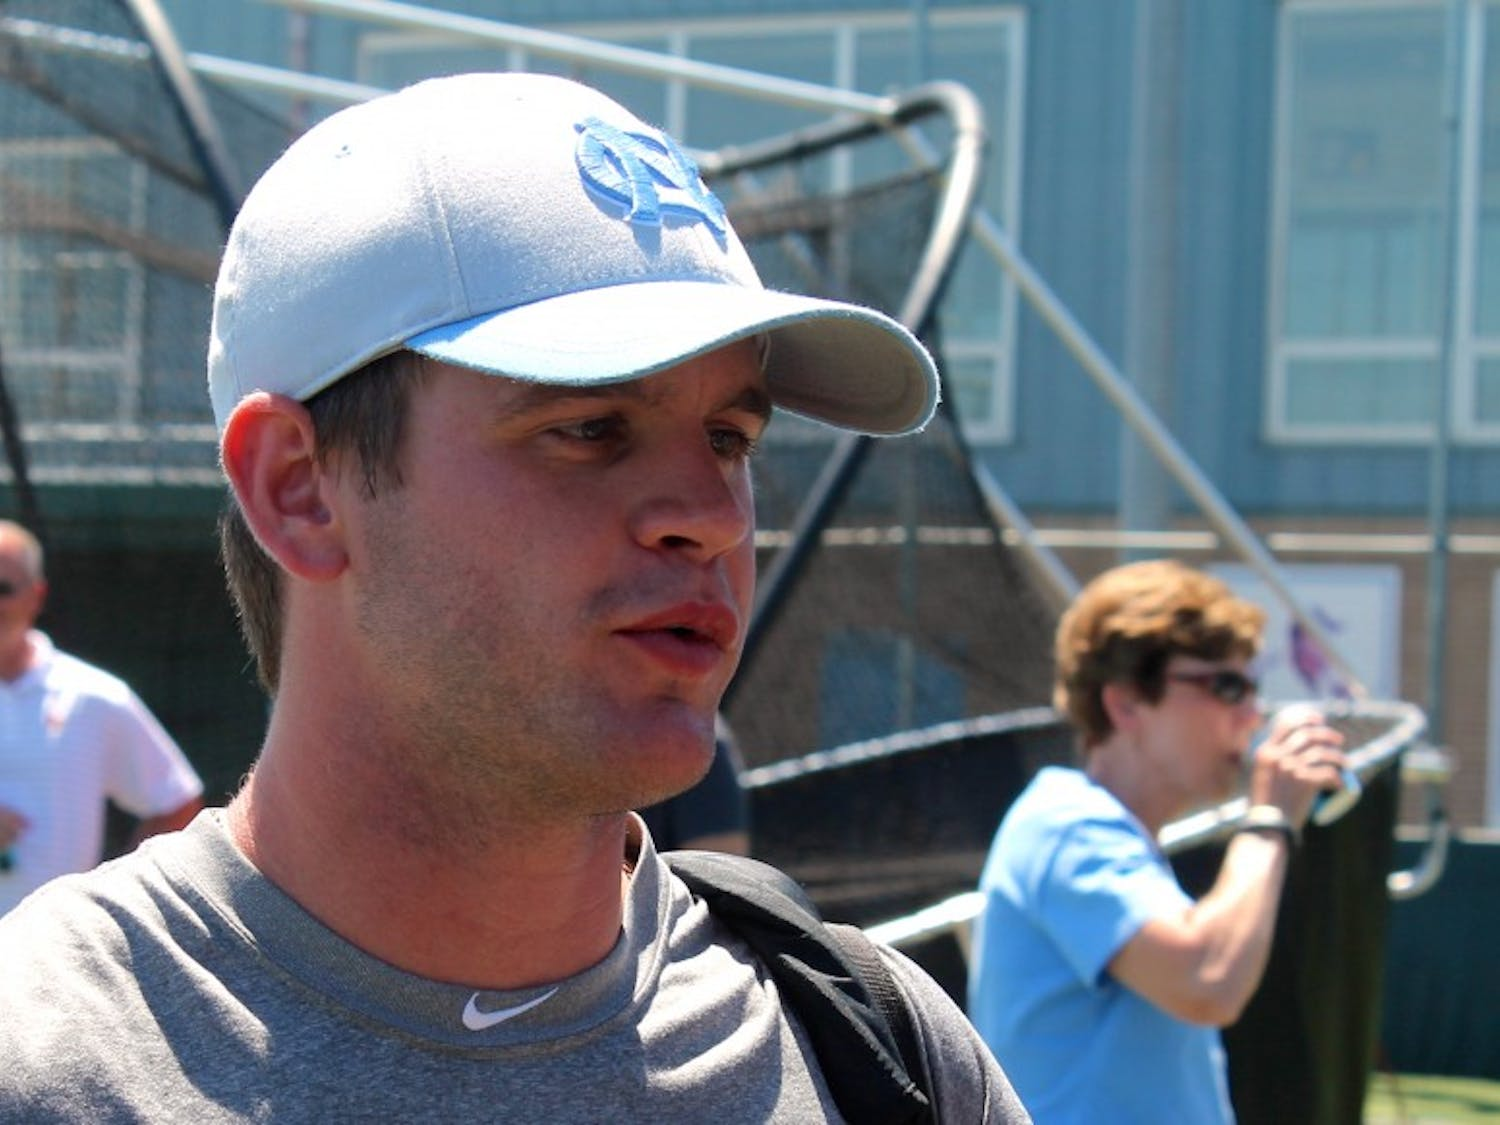 Center fielder Chaz Frank answers questions after Monday afternoon's practice at Creighton.